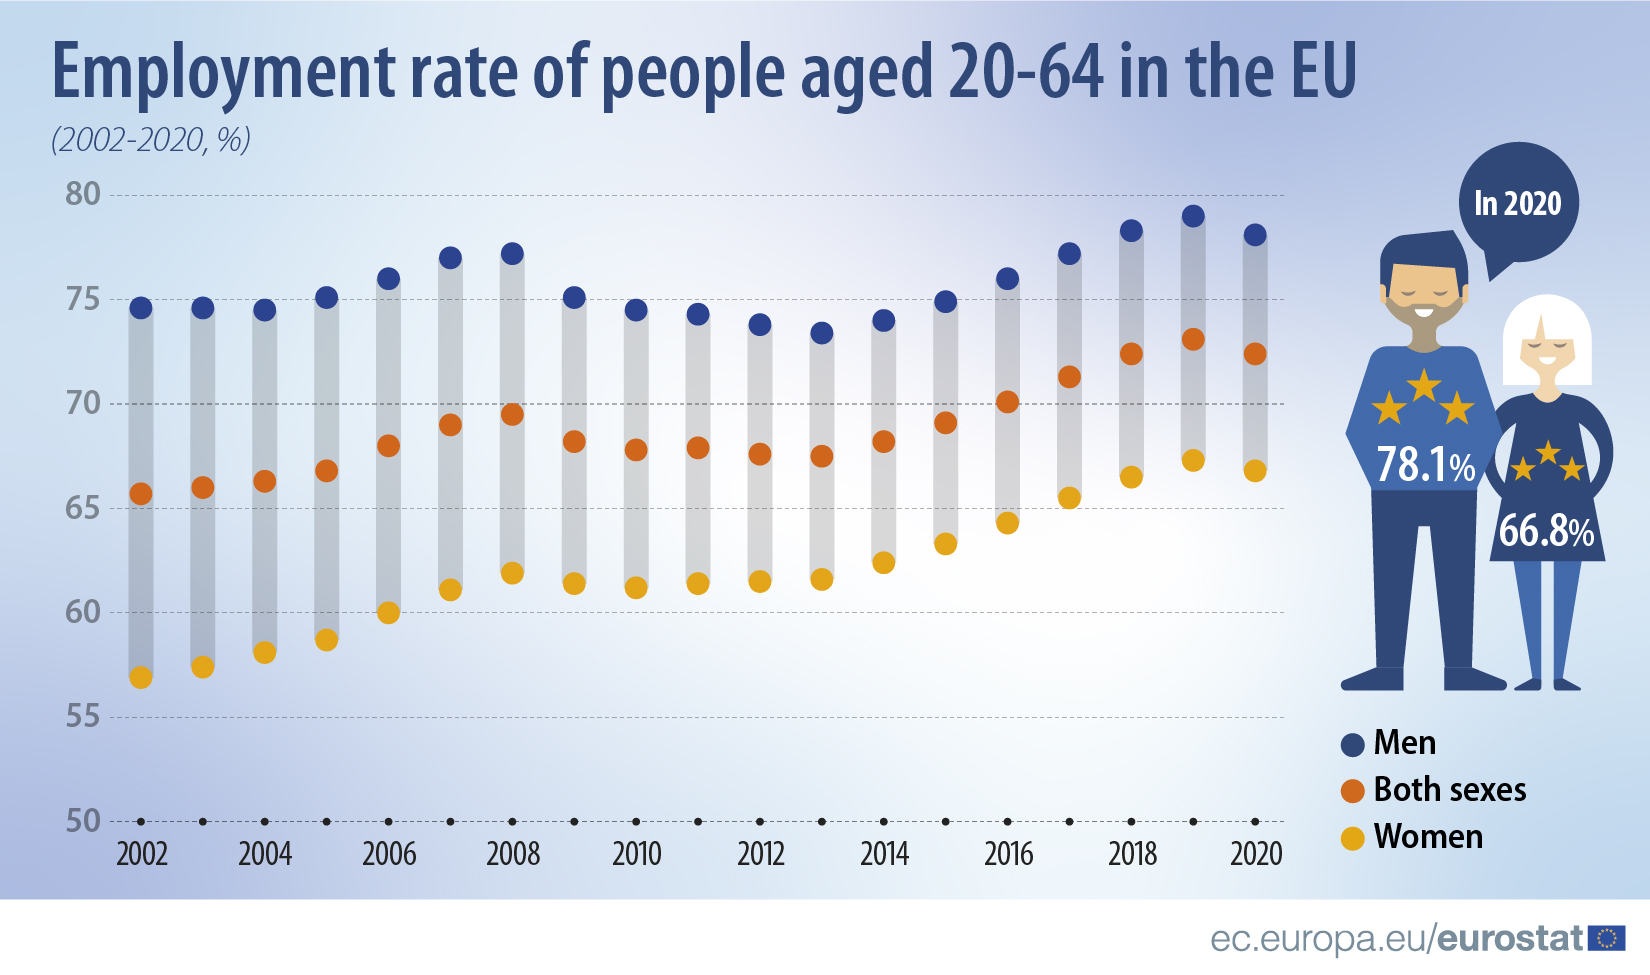 Employment rate of people aged 20-64 in the EU (2002-2020,%)